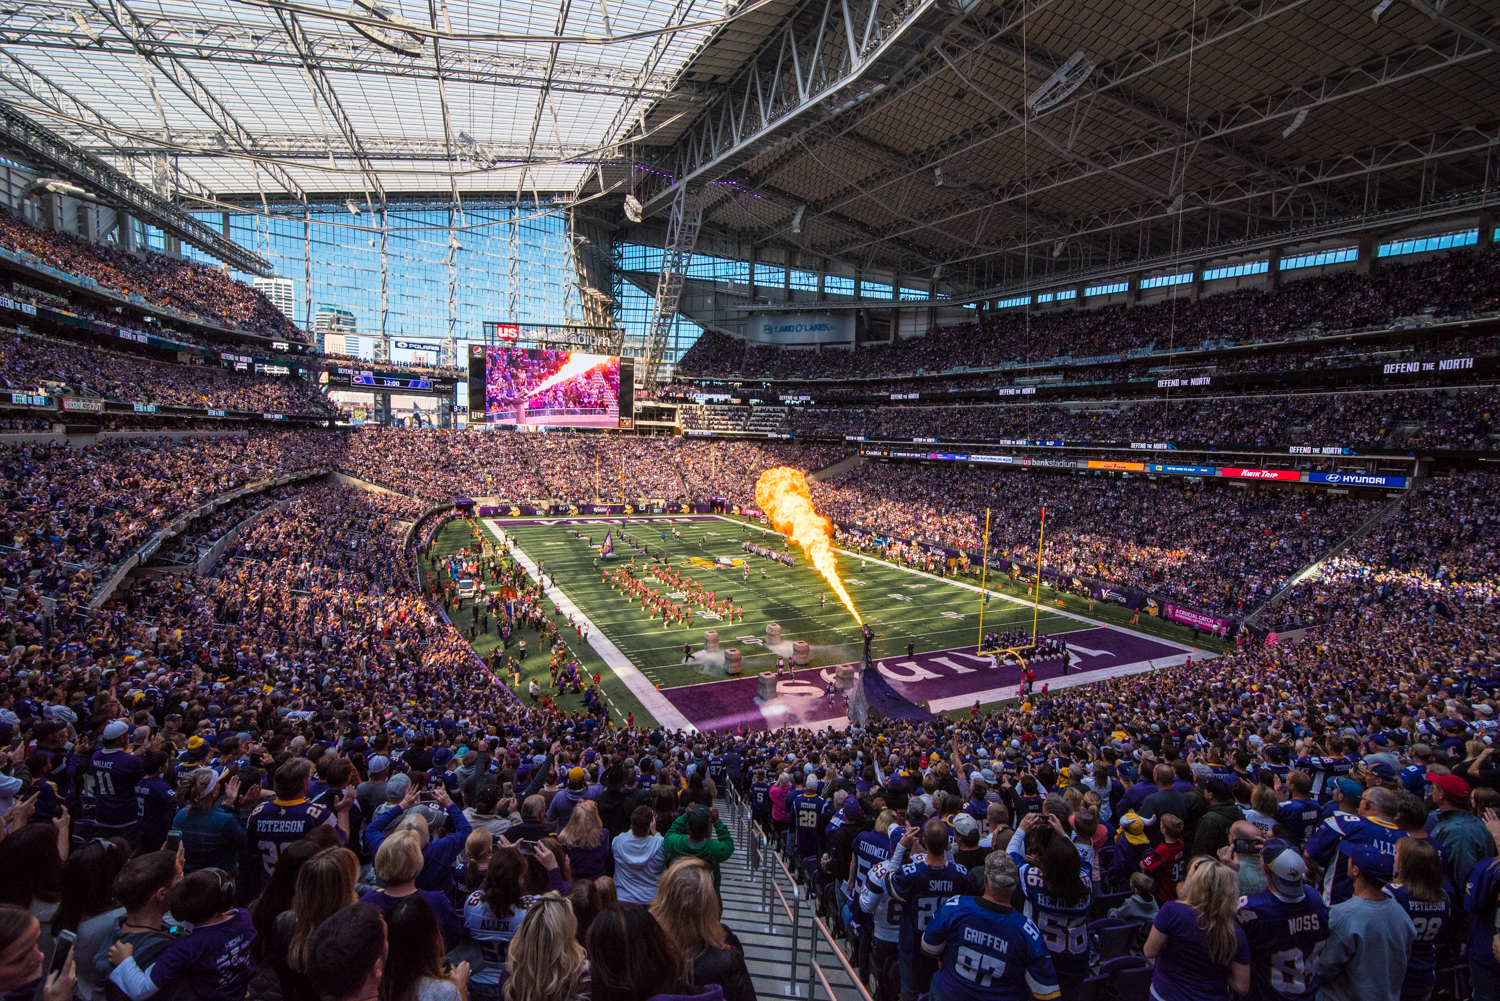 Exterior: EKSTROM: Protester Removed From Rafters At US Bank Stadium